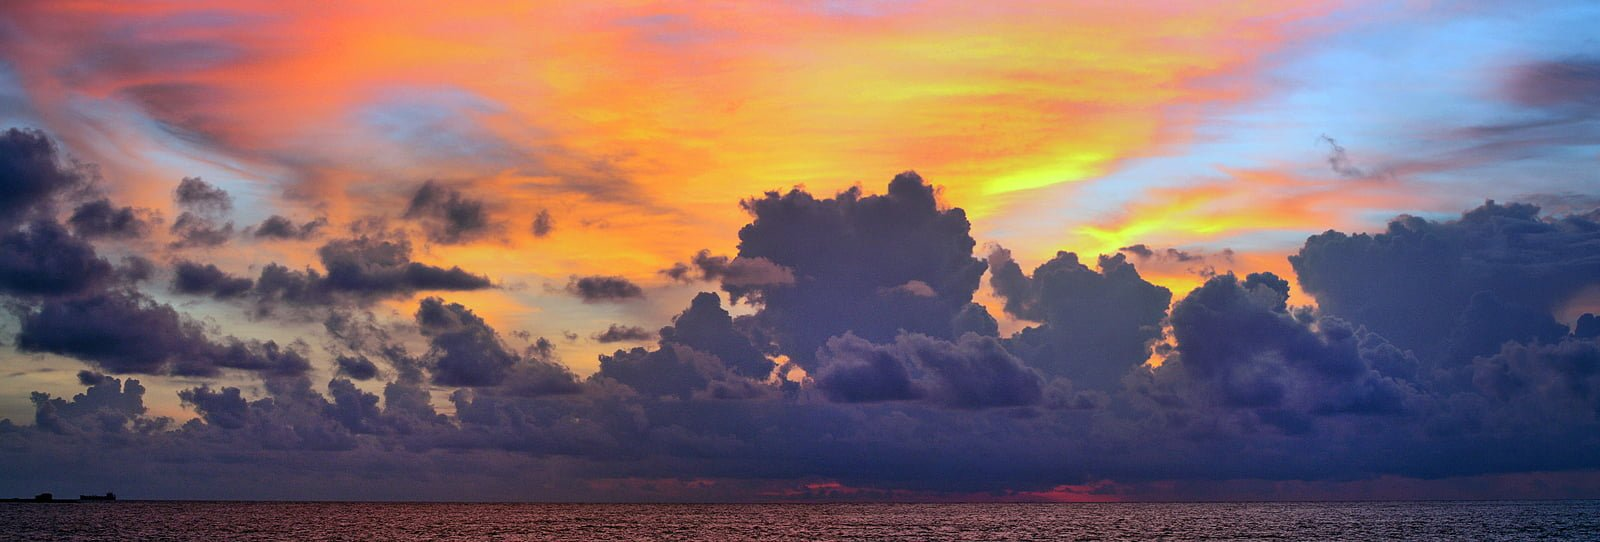 Photography-Sunset-Langkawi-Malaysia-123_456-Flickr